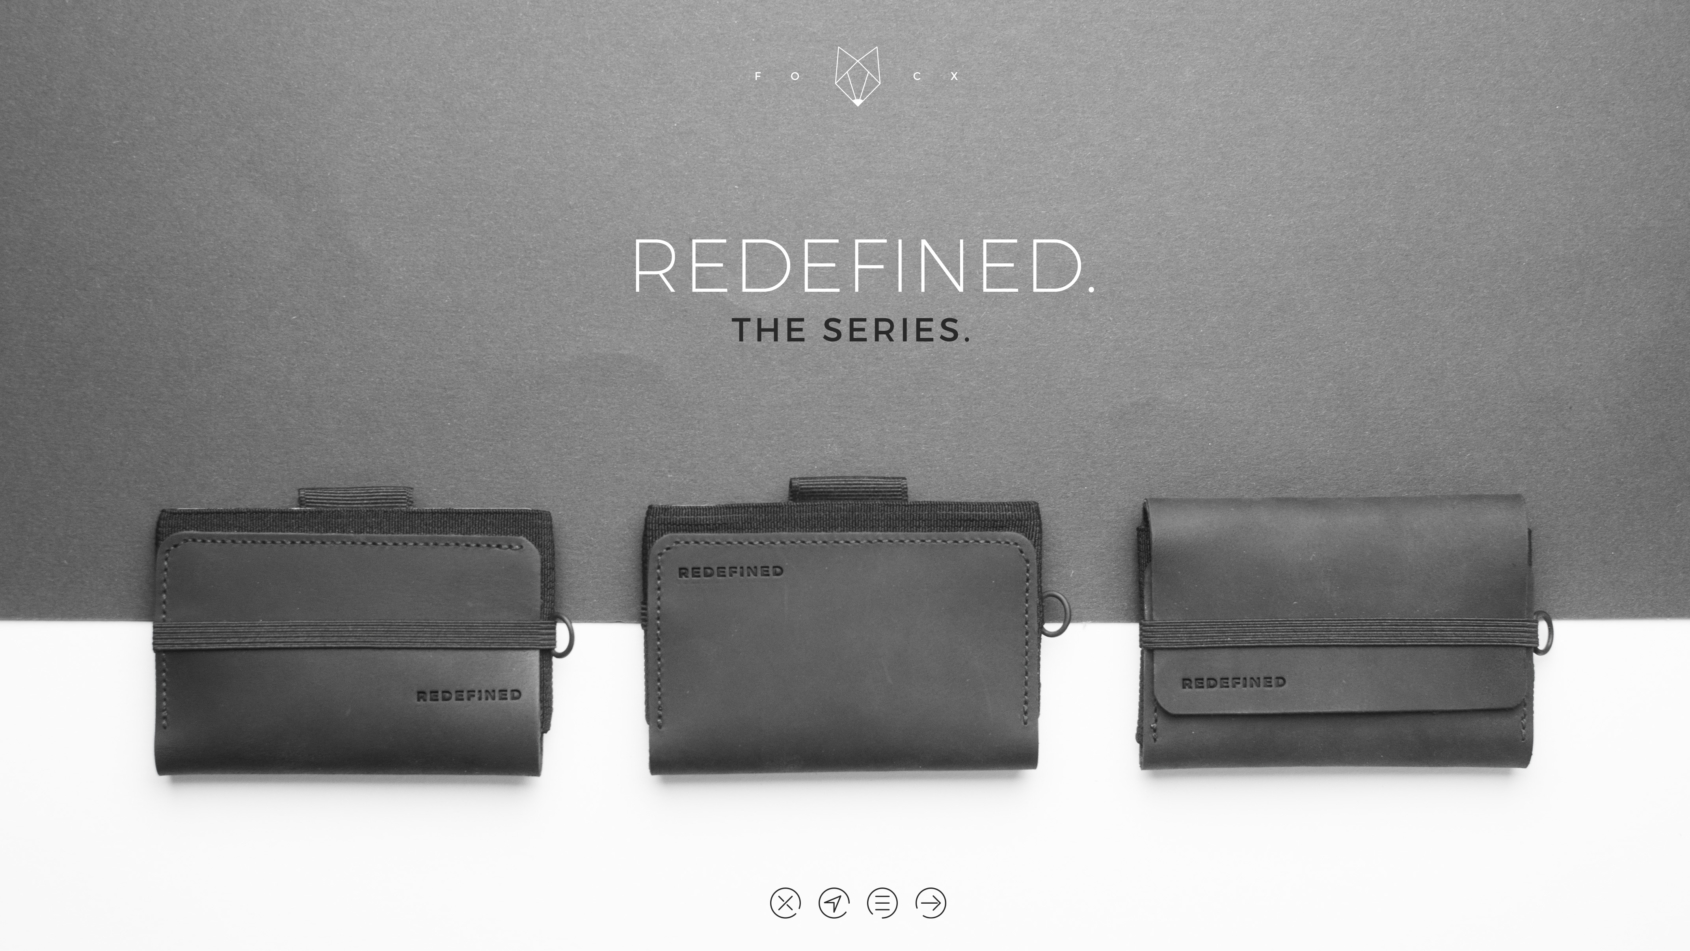 Perfected Wallet: Fast Smart RFID Protected and Stylist Collection